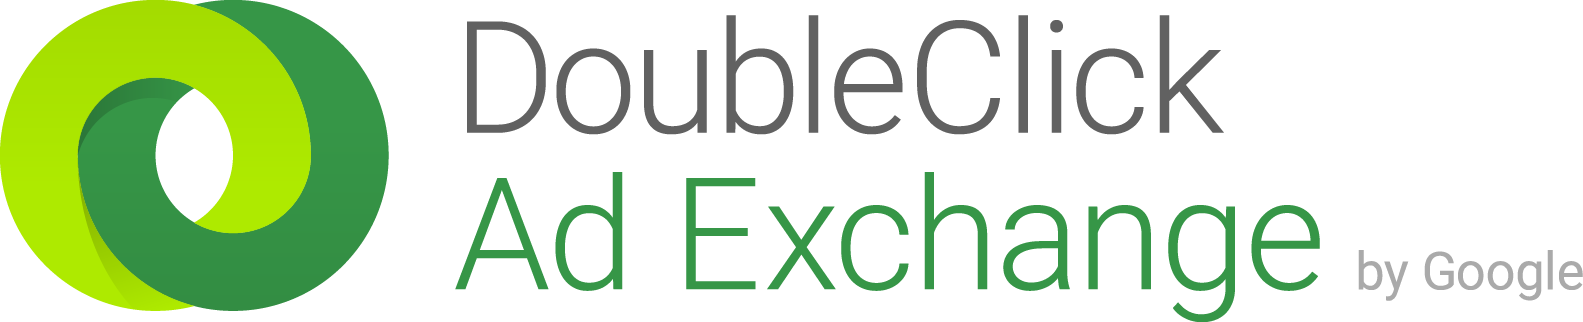 Google-DoubleClick-Ad-Exchange-logo.png